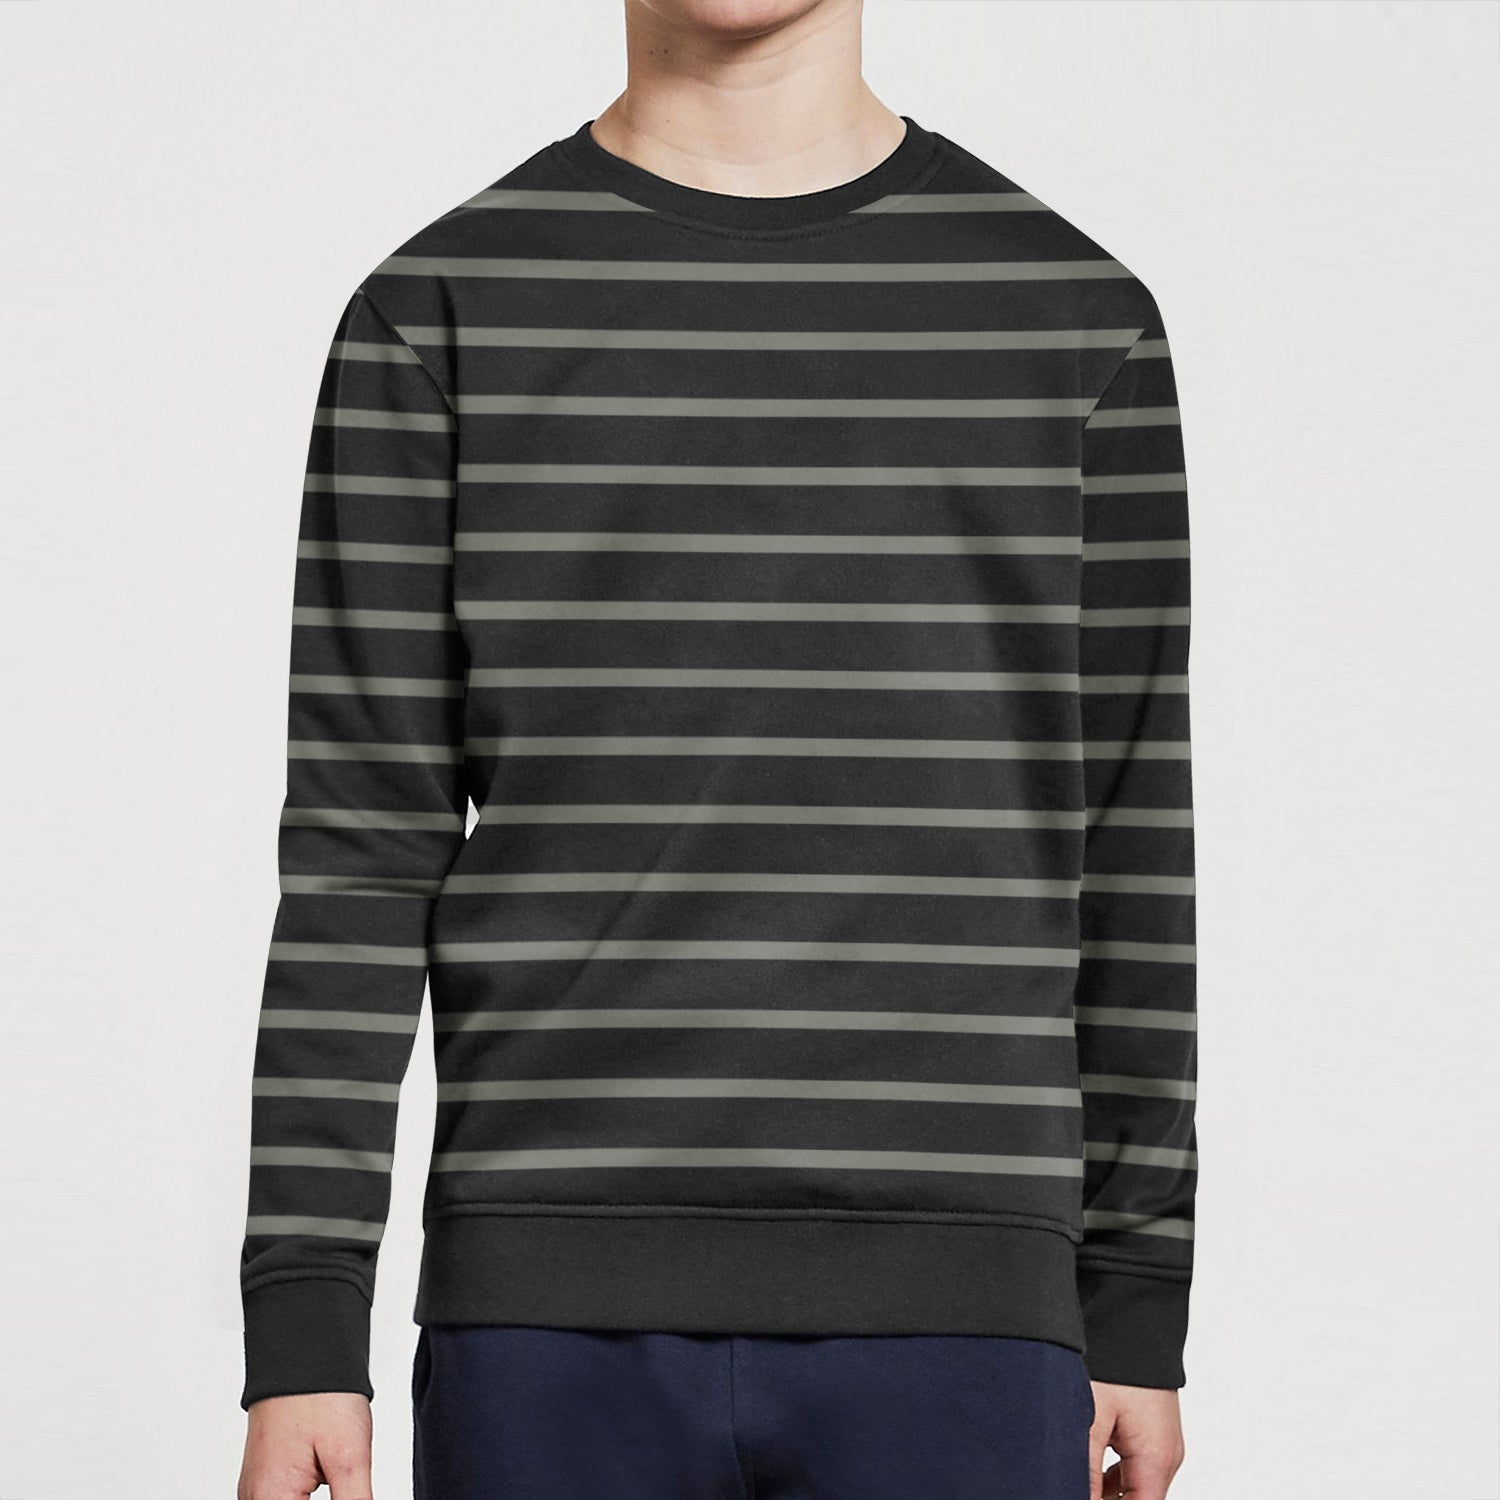 Mango Terry Fleece Sweatshirt For Kids-Black with Stripe-BE12798